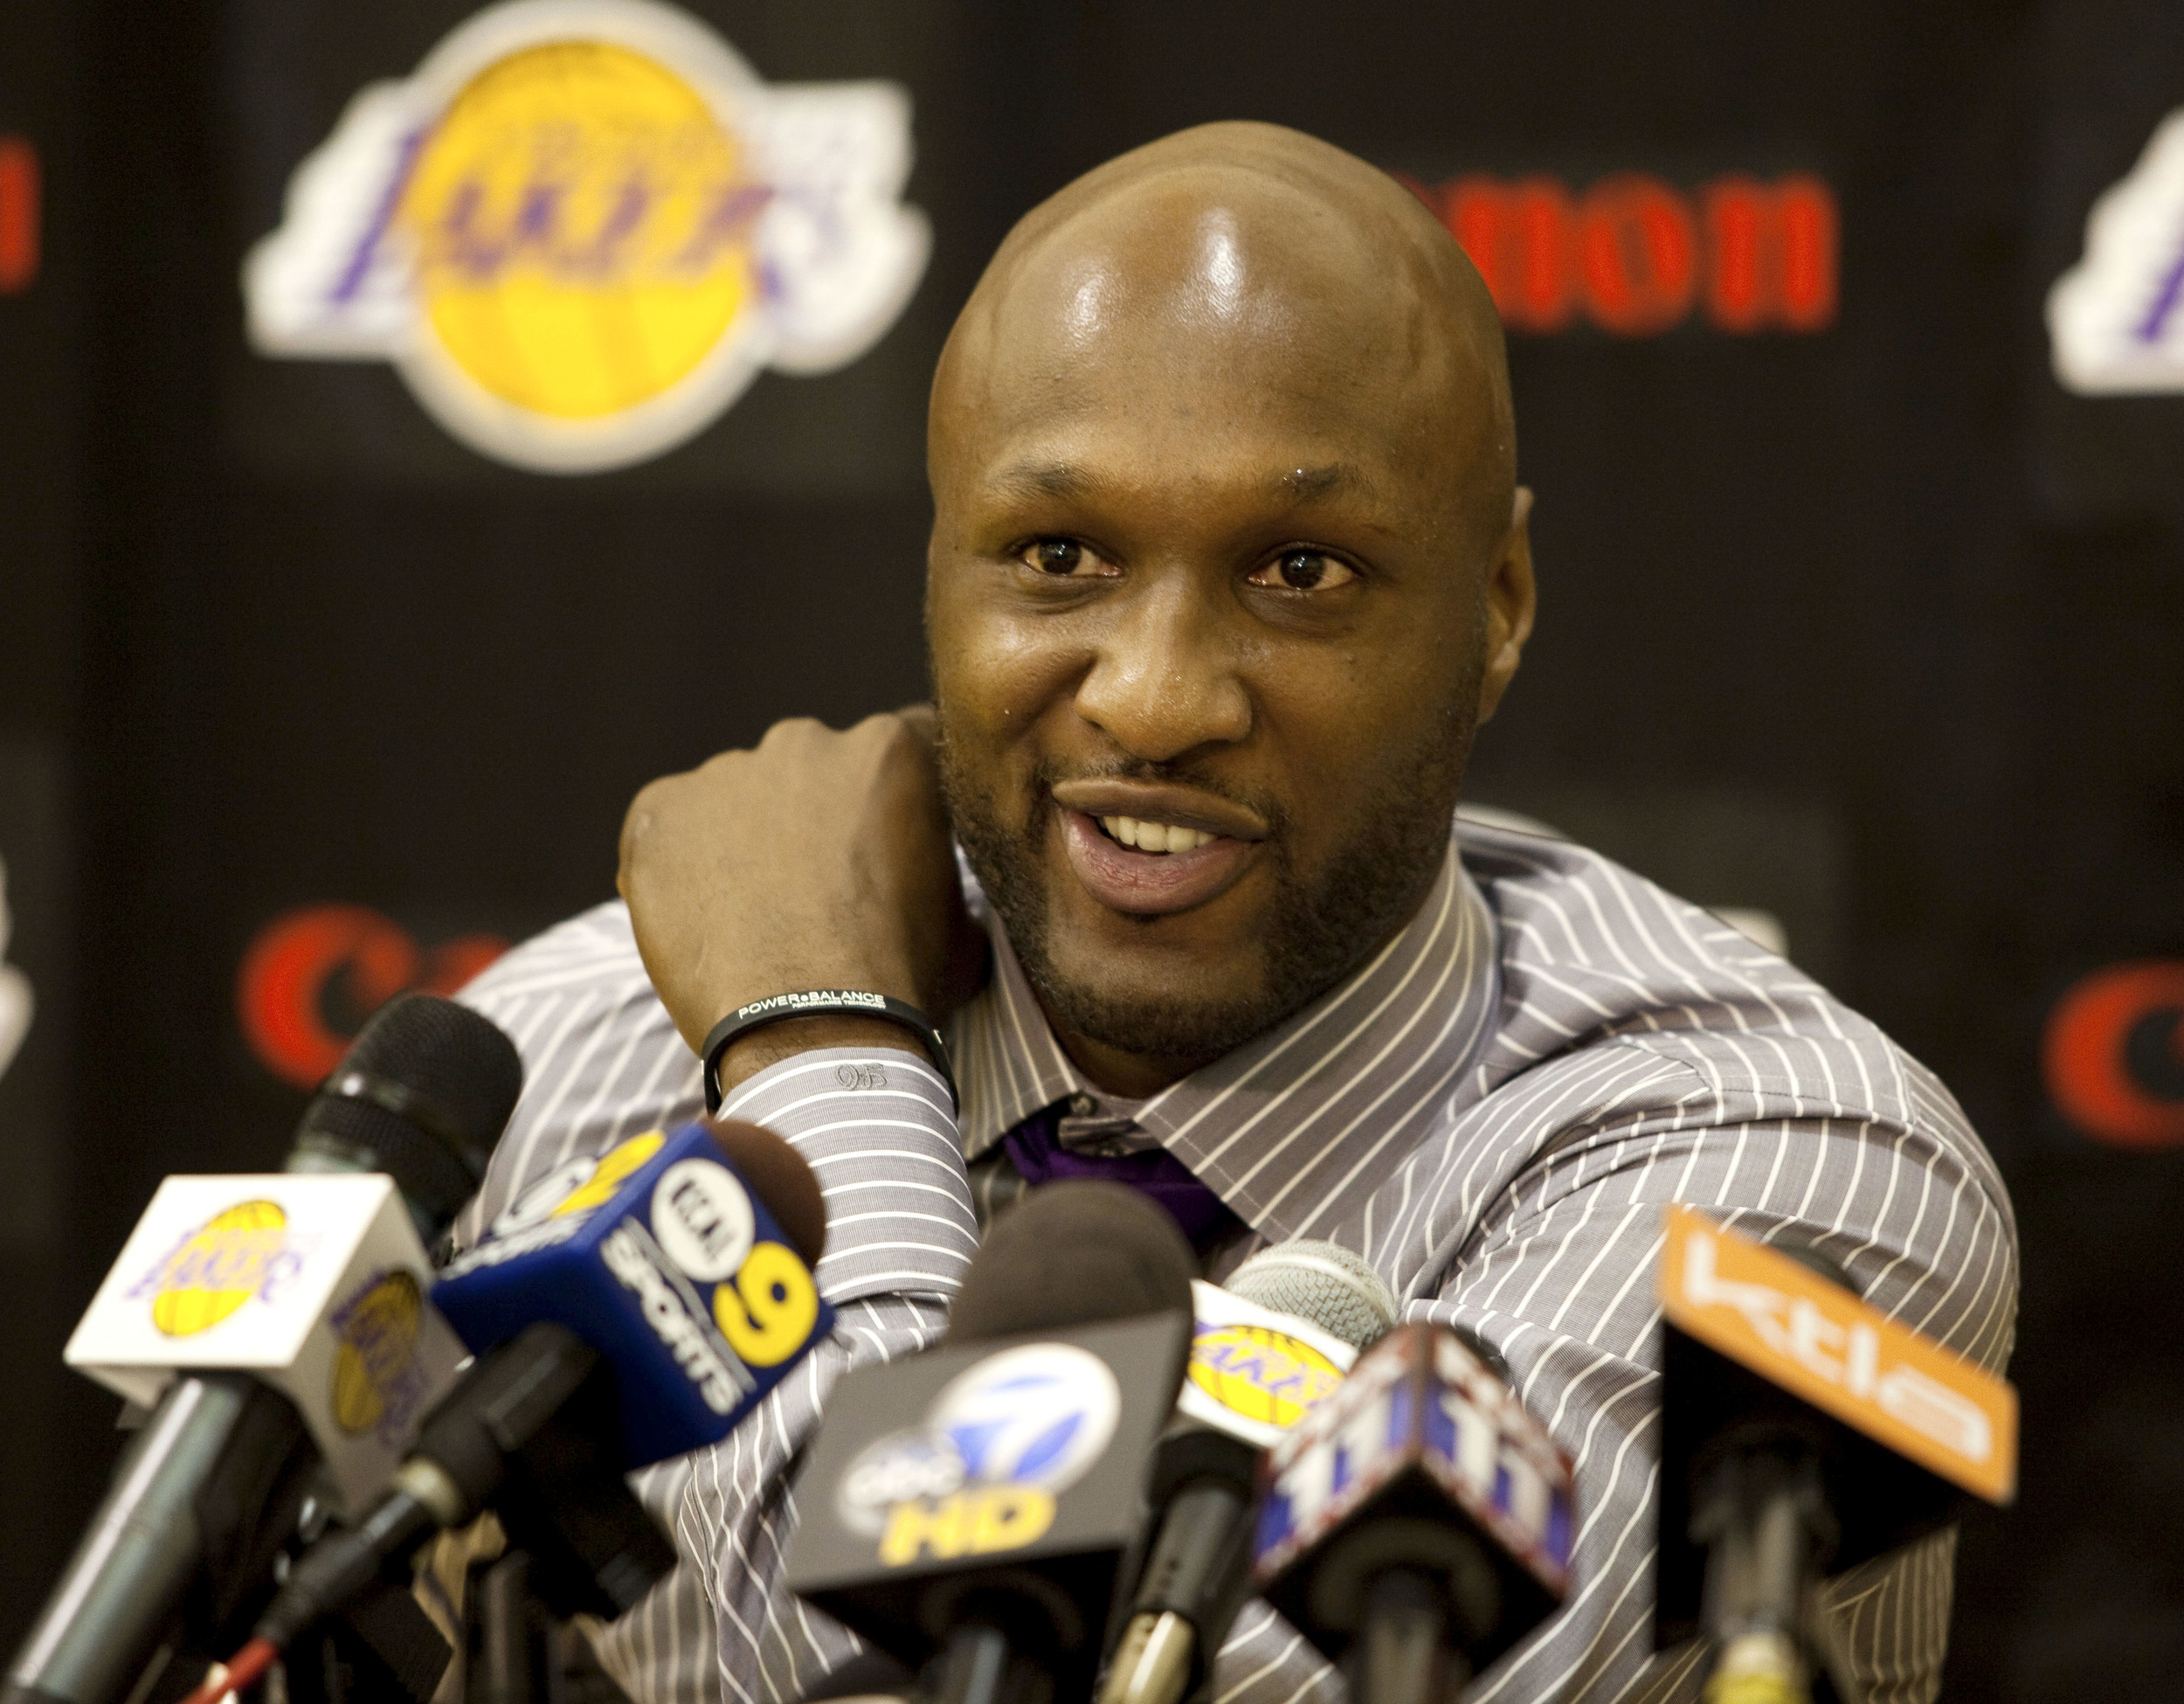 In this July 31, 2009, file photo, Los Angeles Lakers' Lamar Odom speaks to the media during a news conference after the Lakers signed Odom to a multi-year NBA basketball contract, in El Segundo, California. (Jeff Lewis, File/AP)